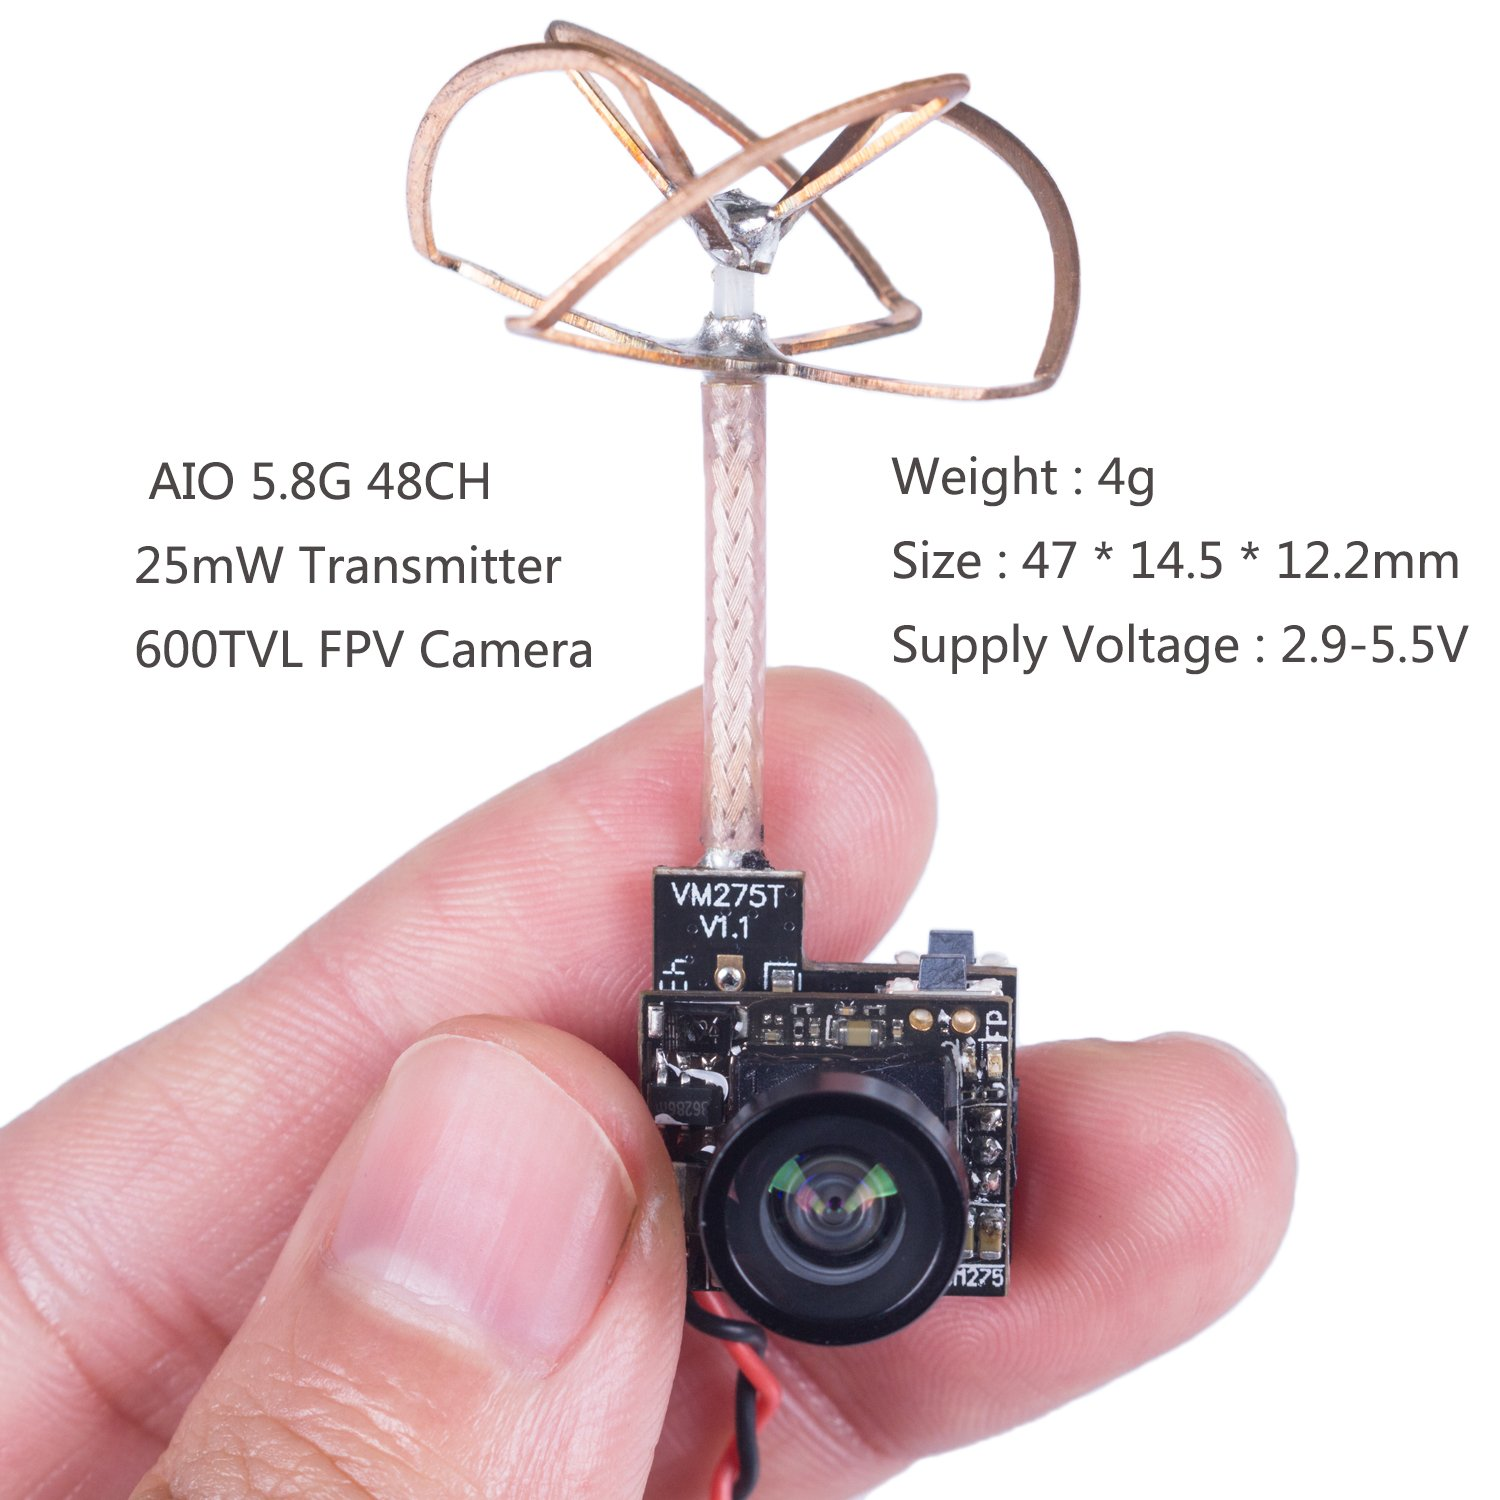 SunFounder SF-C02 Micro FPV Camera with 5.8G 48CH 25mW Transmitter and Clover Leaf Antenna for Blade Inductrix Quadcopter Multiroter Aircraft Model